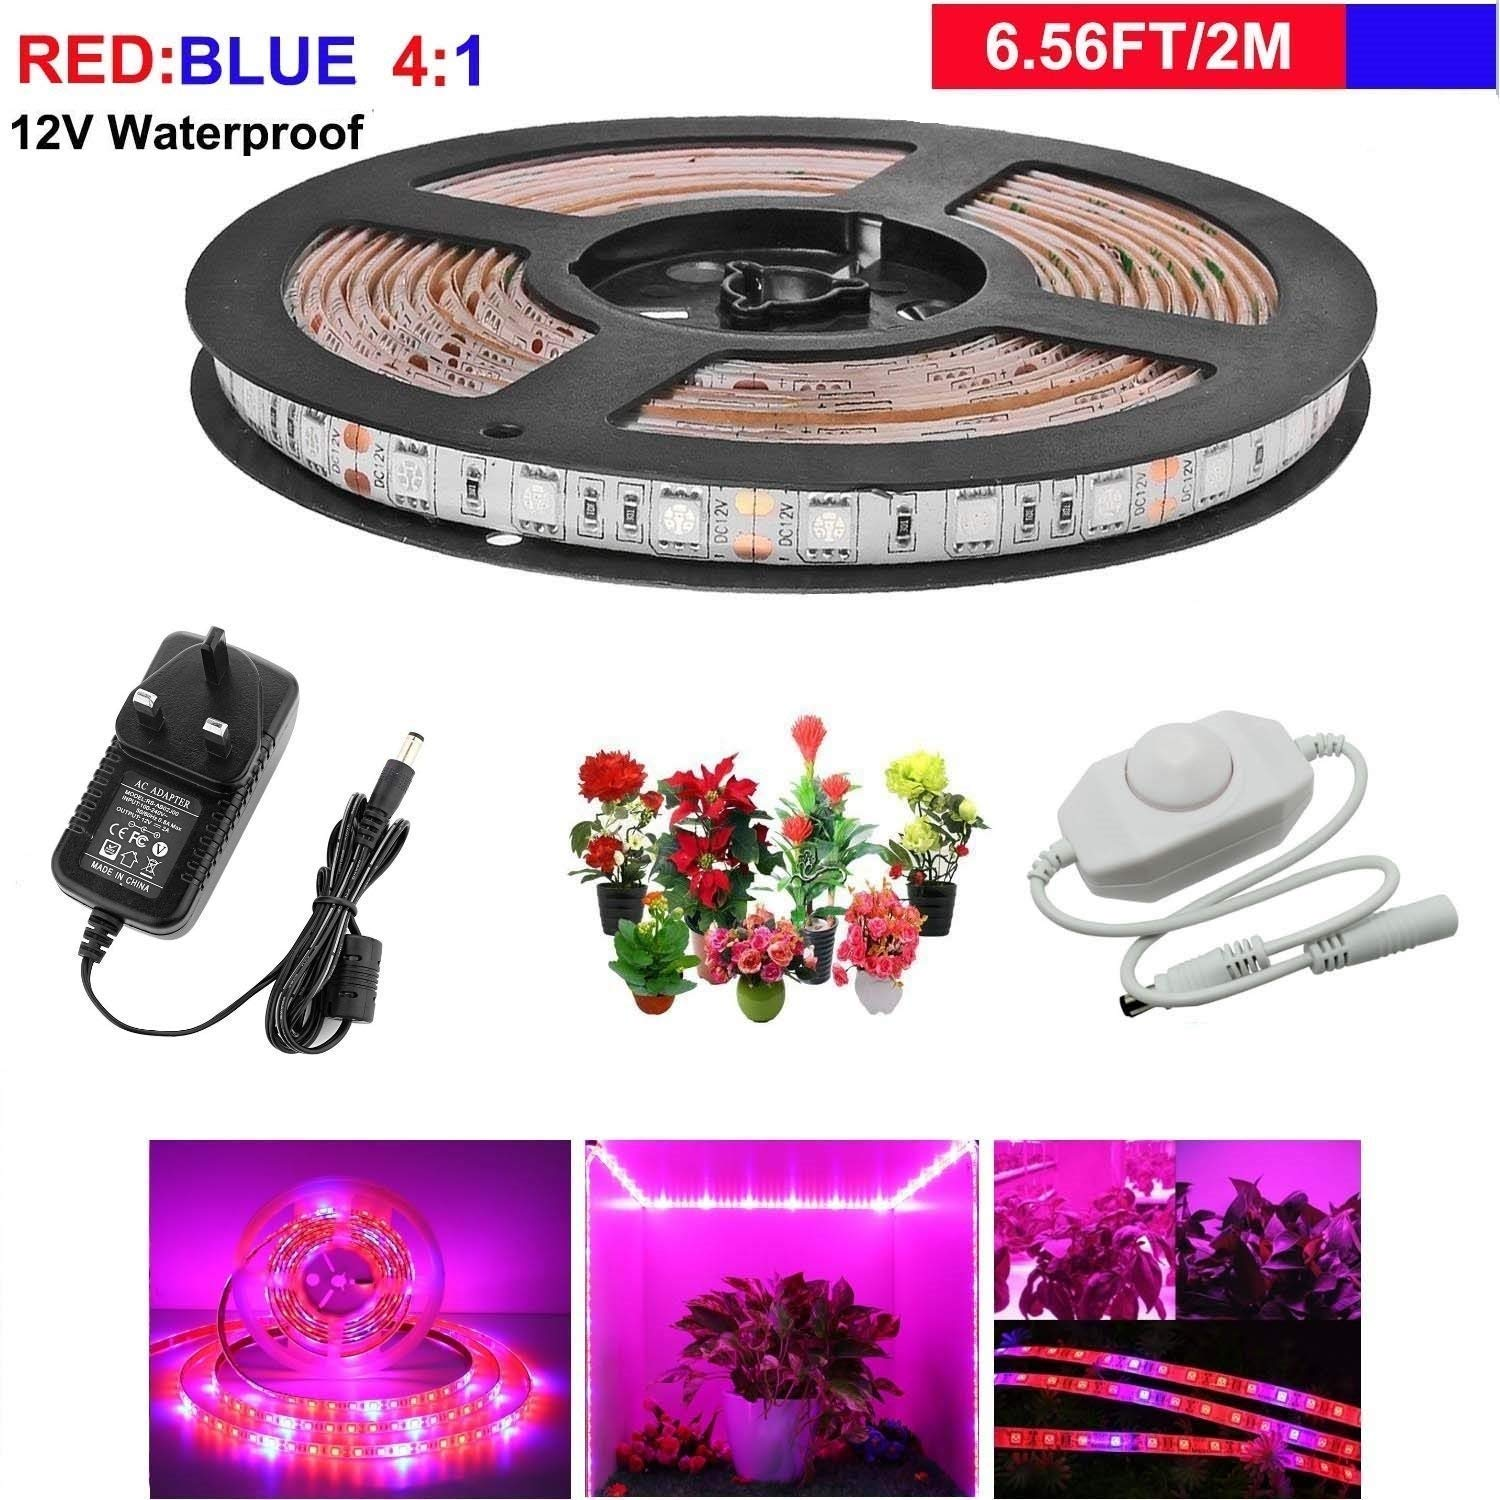 LEHOU Grow Lights, LED Plant Lights Waterproof Grow Strip Light Full Spectrum Rope Lights Red Blue 4:1 for Aquarium Greenhouse Hydroponic Plant, Garden Flowers Veg with 12V/3A Power Adapter